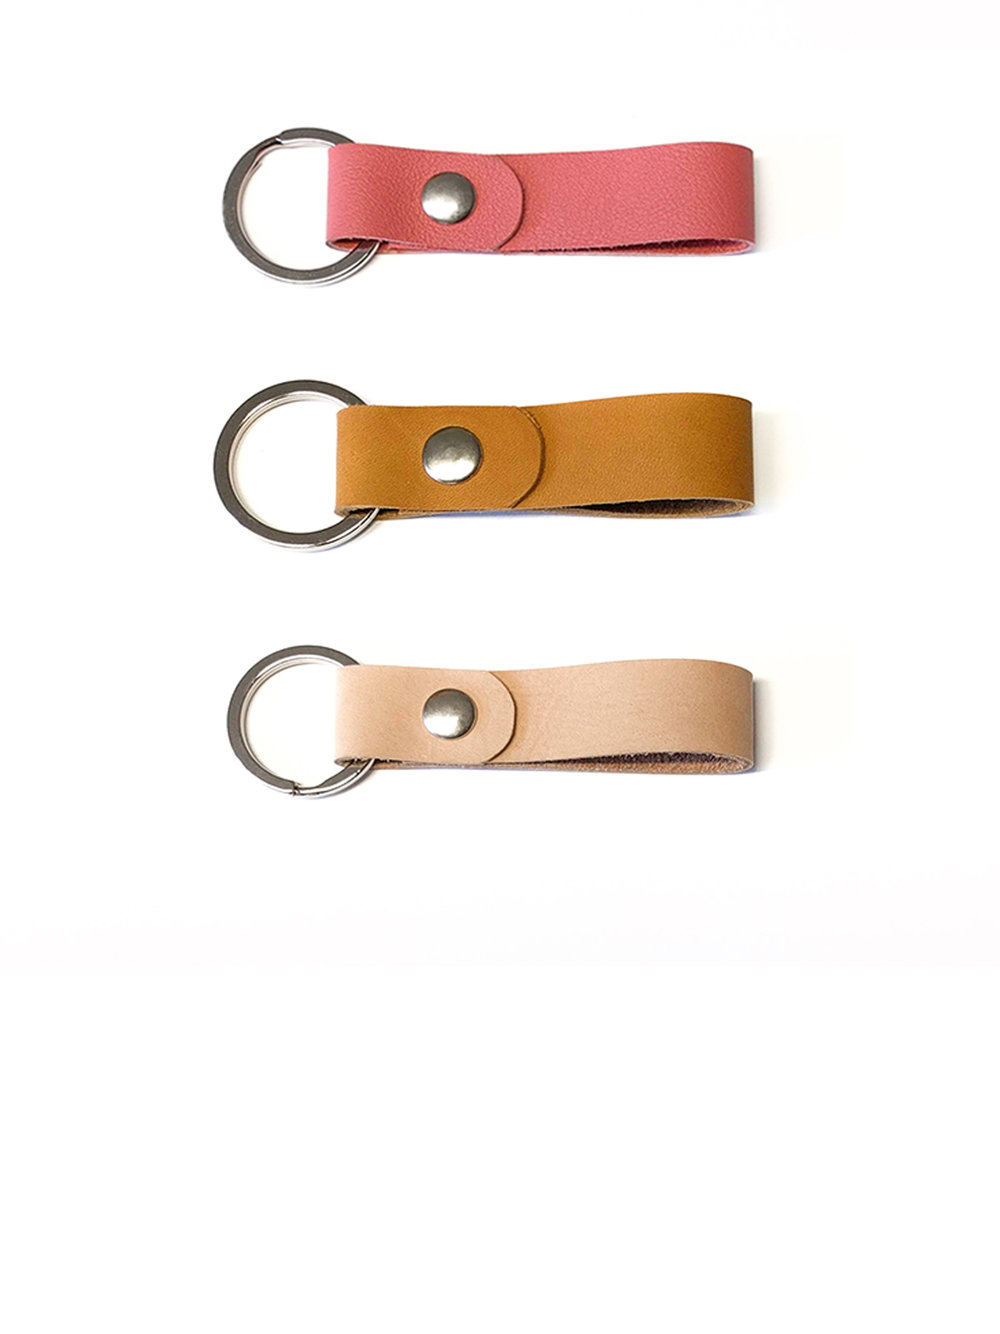 Leather keychains - 10.00$